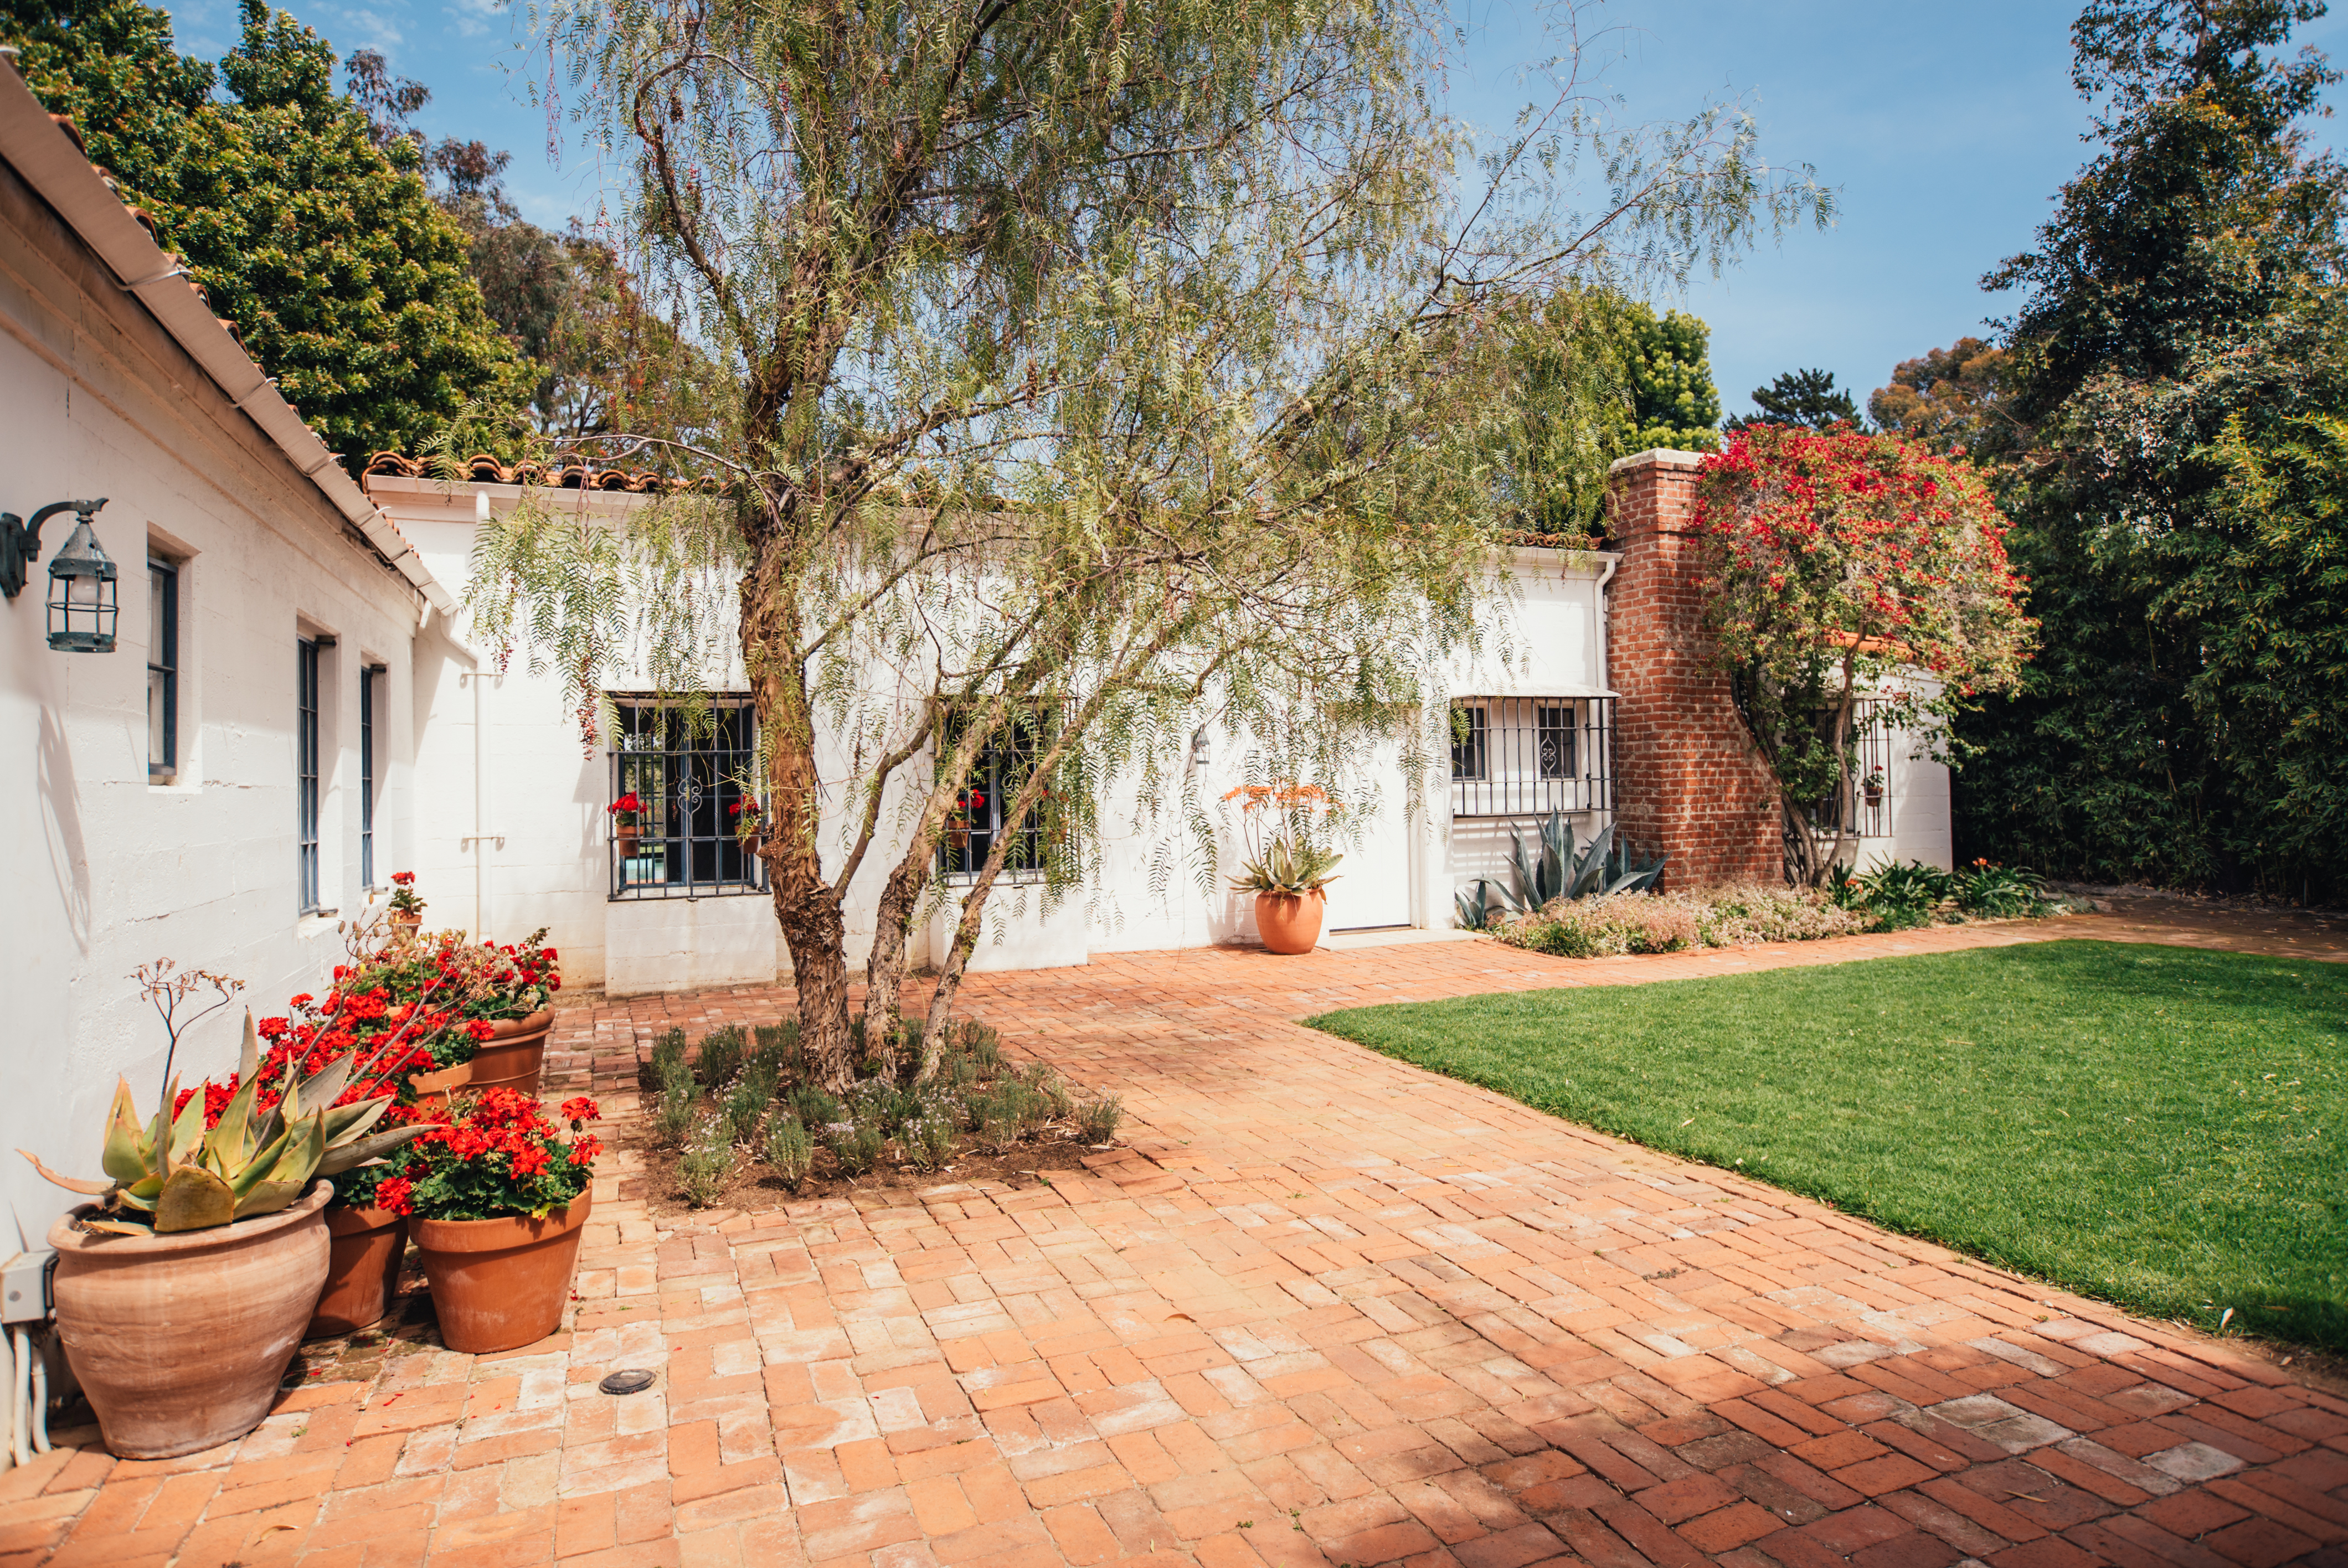 Marilyn Monroe Mansion Marilyn Monroe's Brentwood House Is For Sale For $6.9M  Curbed La